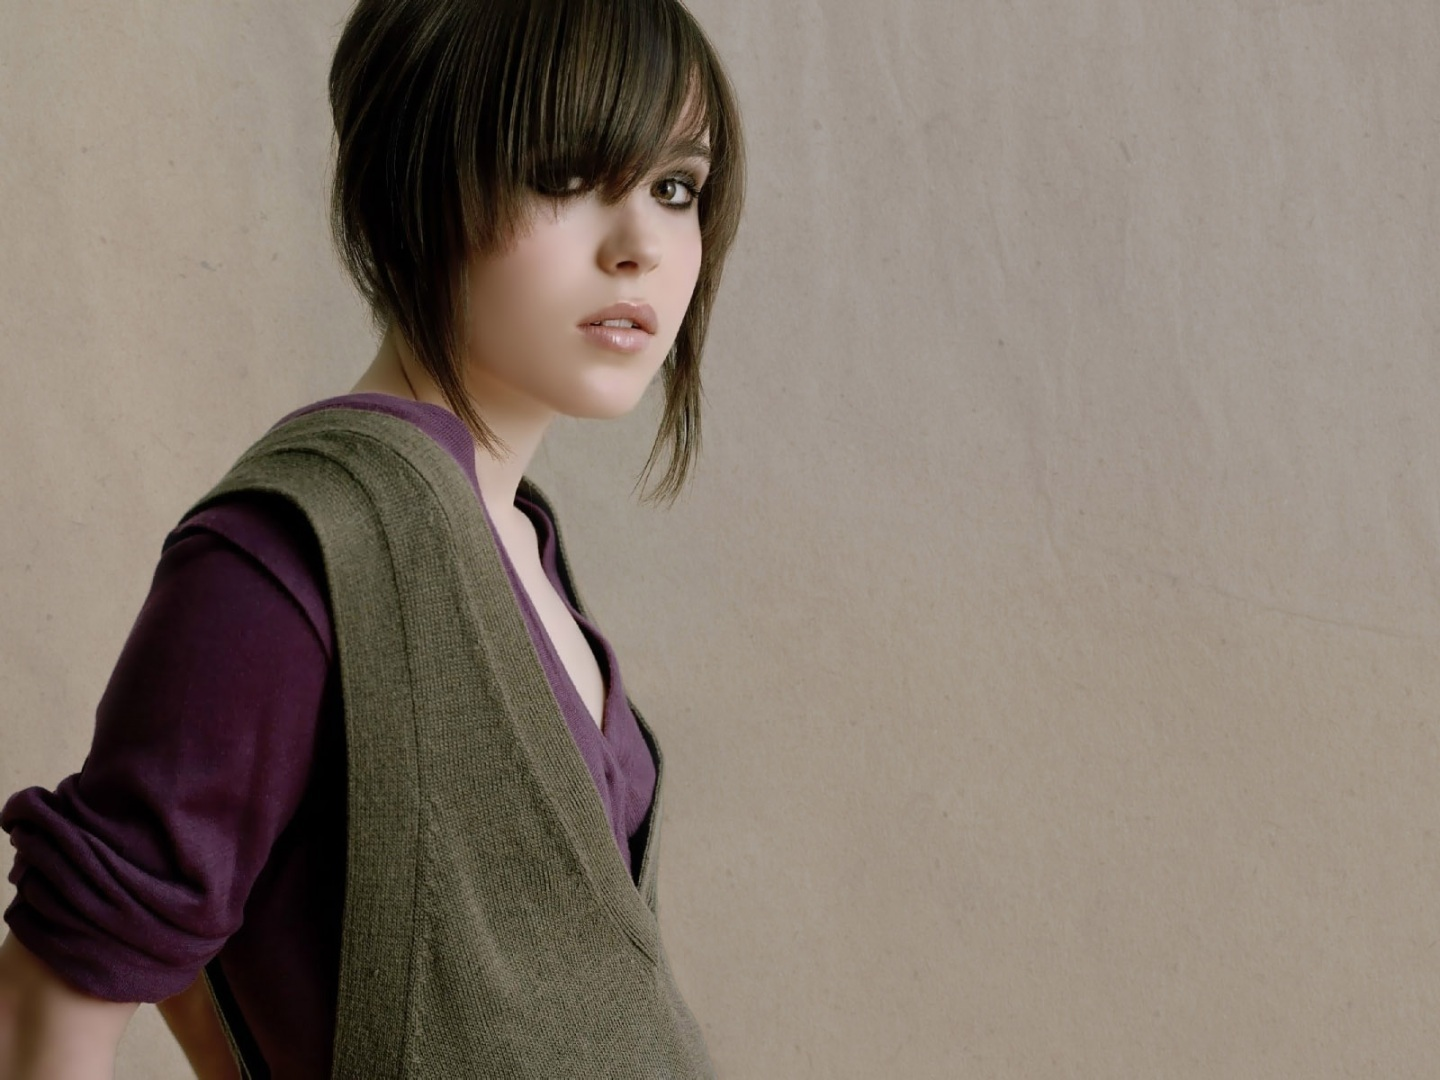 ellen-page-hot-hd-wallpapers-wallpaper-1418872162